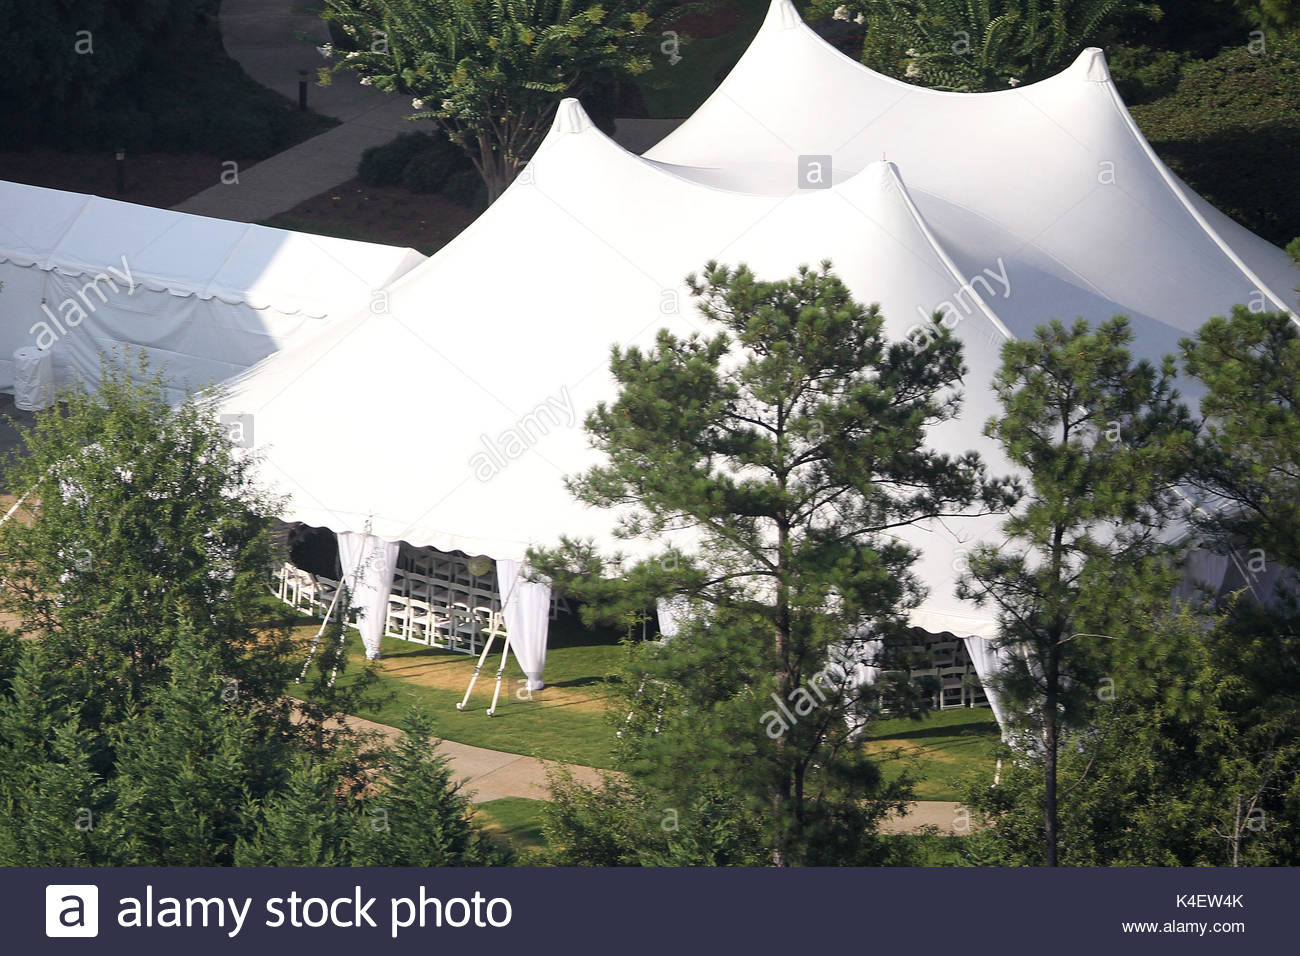 Carrie Underwoodu0027s wedding tent. Wedding tent set up for Carrie Underwoodu0027s wedding in Georgia. & Carrie Underwoodu0027s wedding tent. Wedding tent set up for Carrie ...